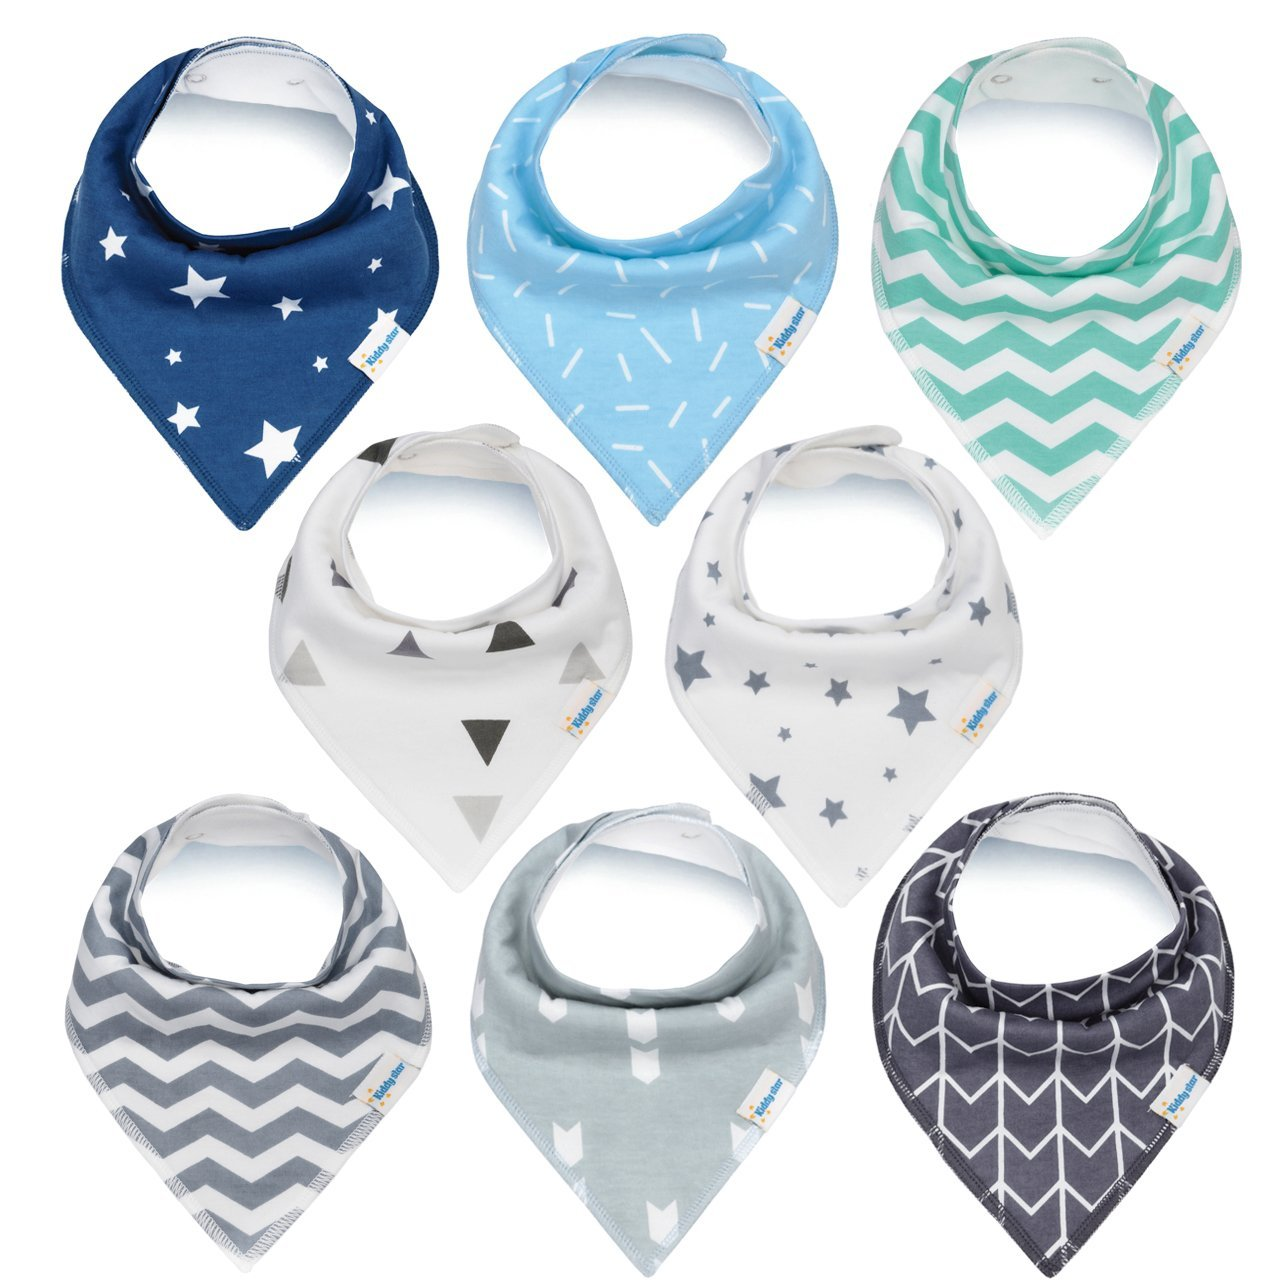 Baby Bandana Drool Bibs, Unisex 8-Pack Gift Set for Drooling and Teething, Organic Cotton, Soft and Absorbent, Hypoallergenic - for Boys and Girls by KiddyStar